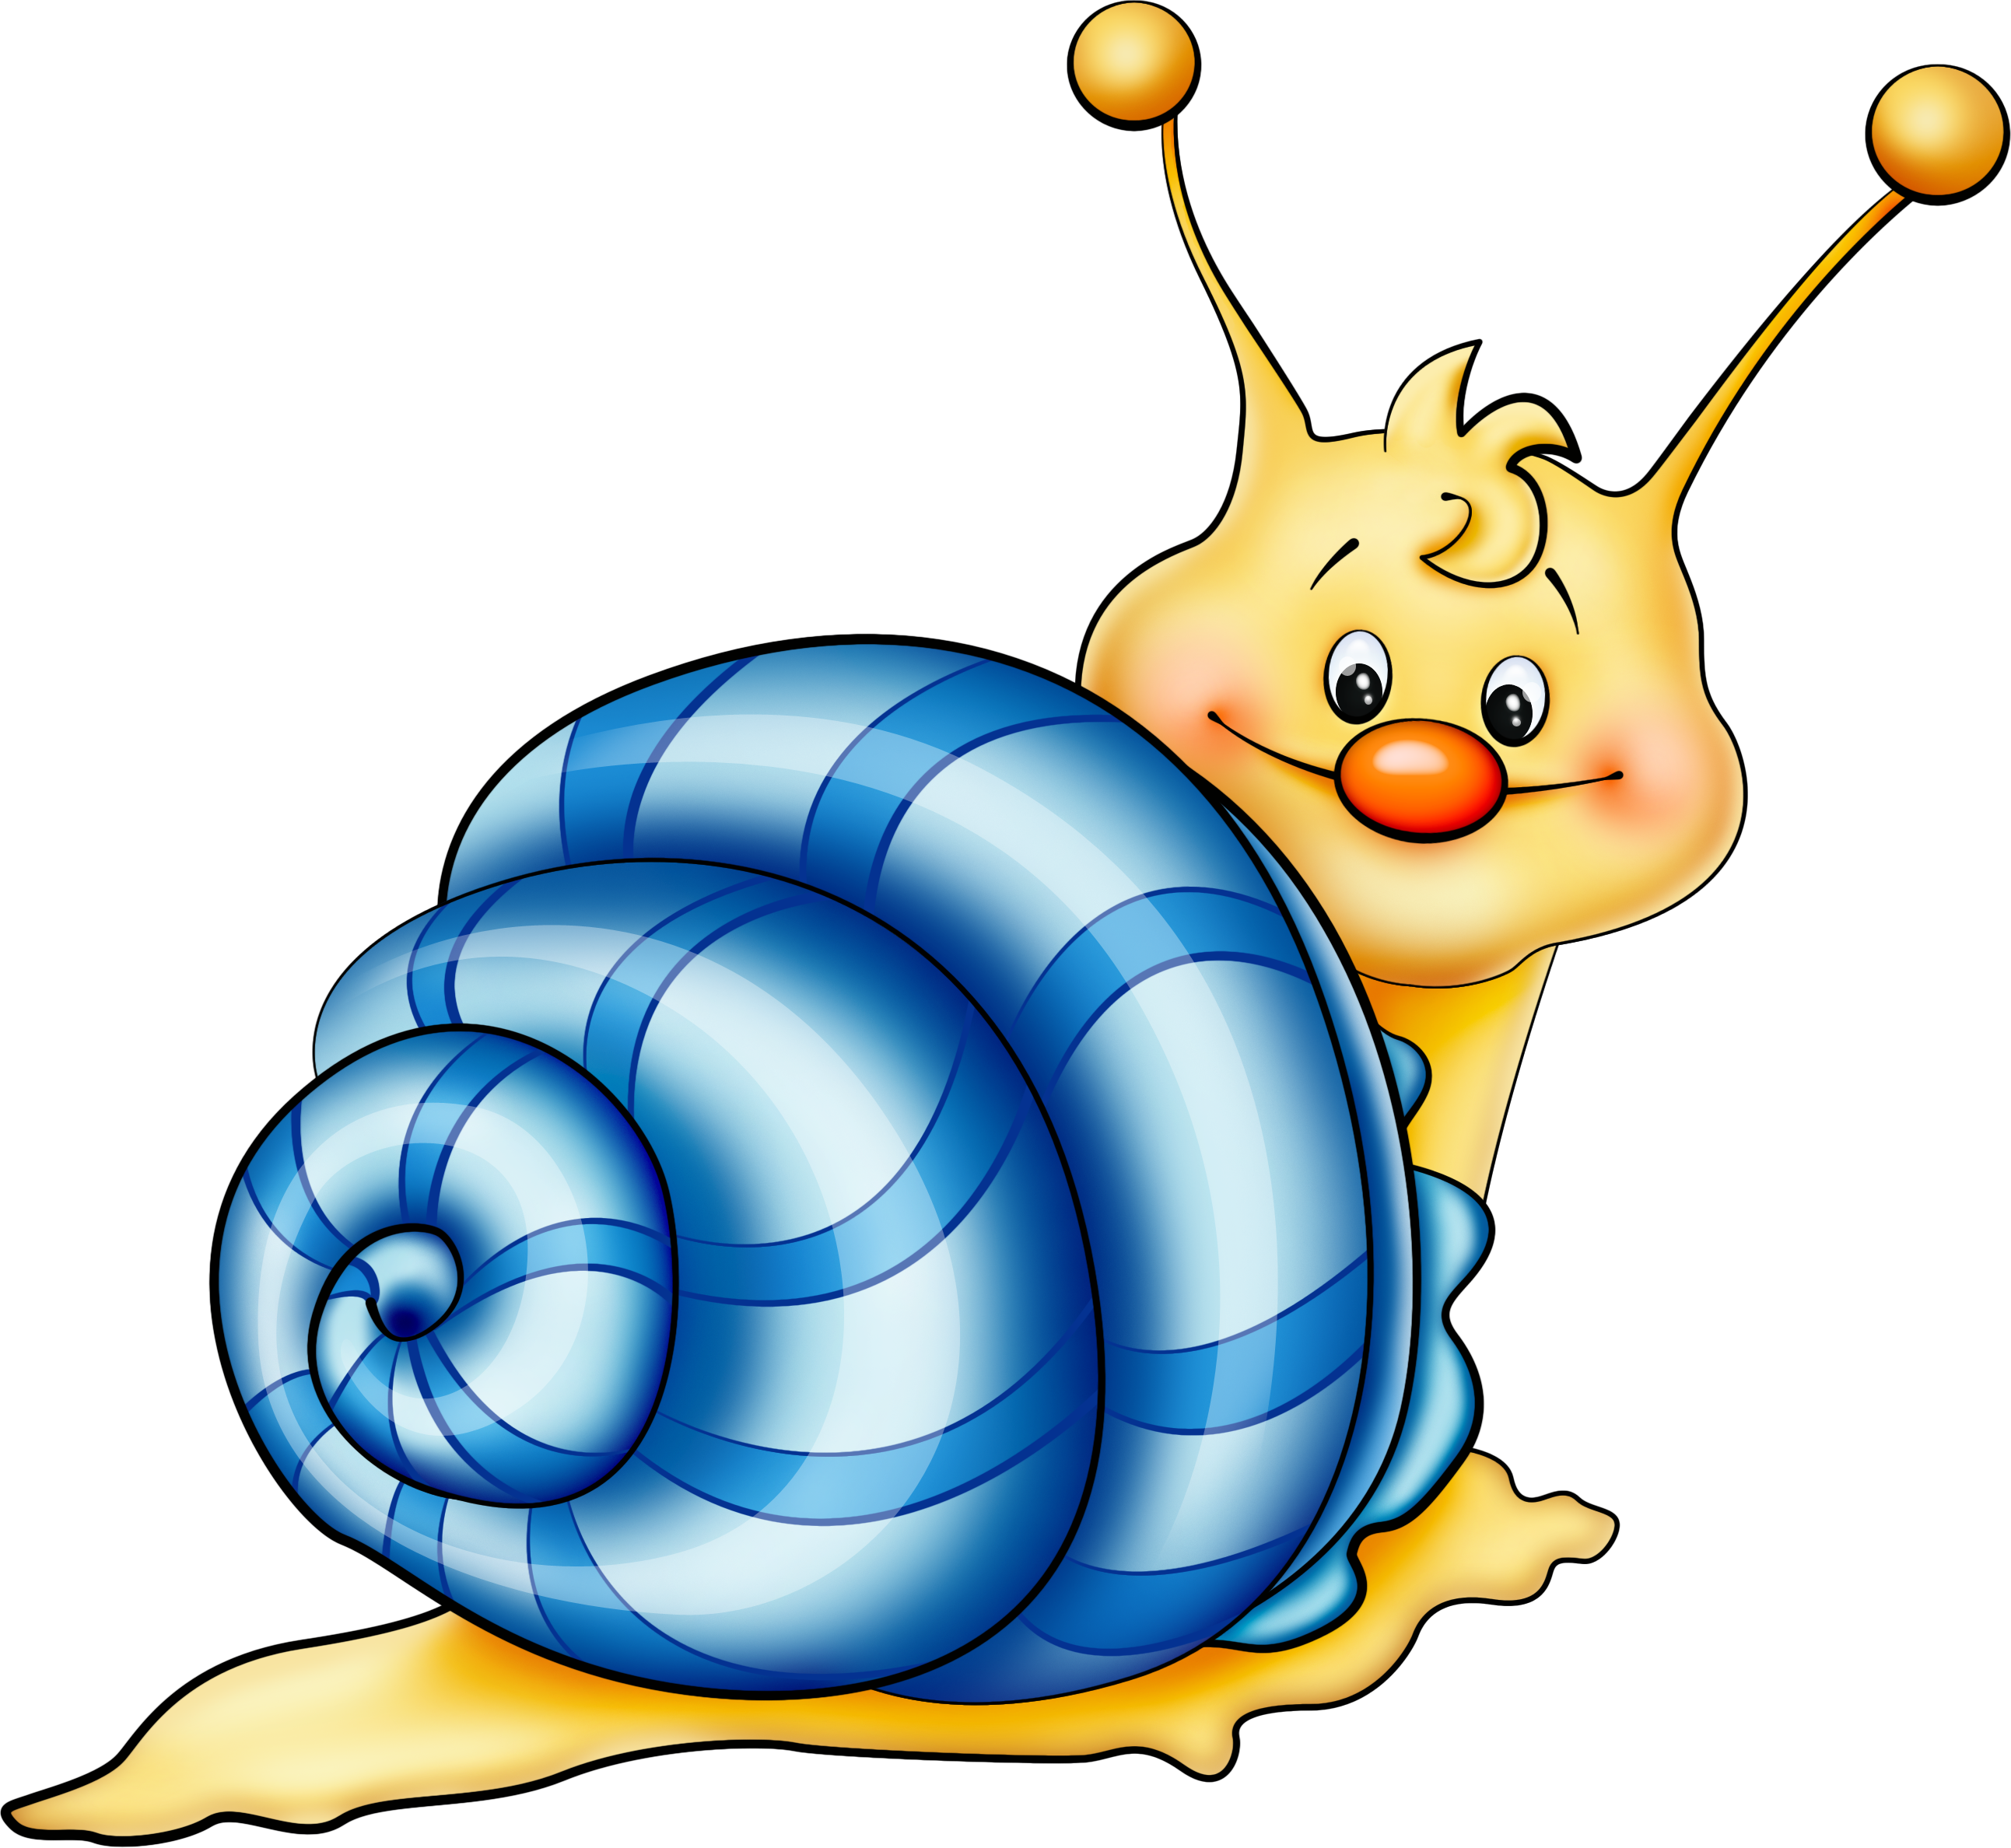 Silly blue fish clipart clipart transparent Blue Snail Cartoon PNG Picture | Obrázky | Pinterest | Snail ... clipart transparent